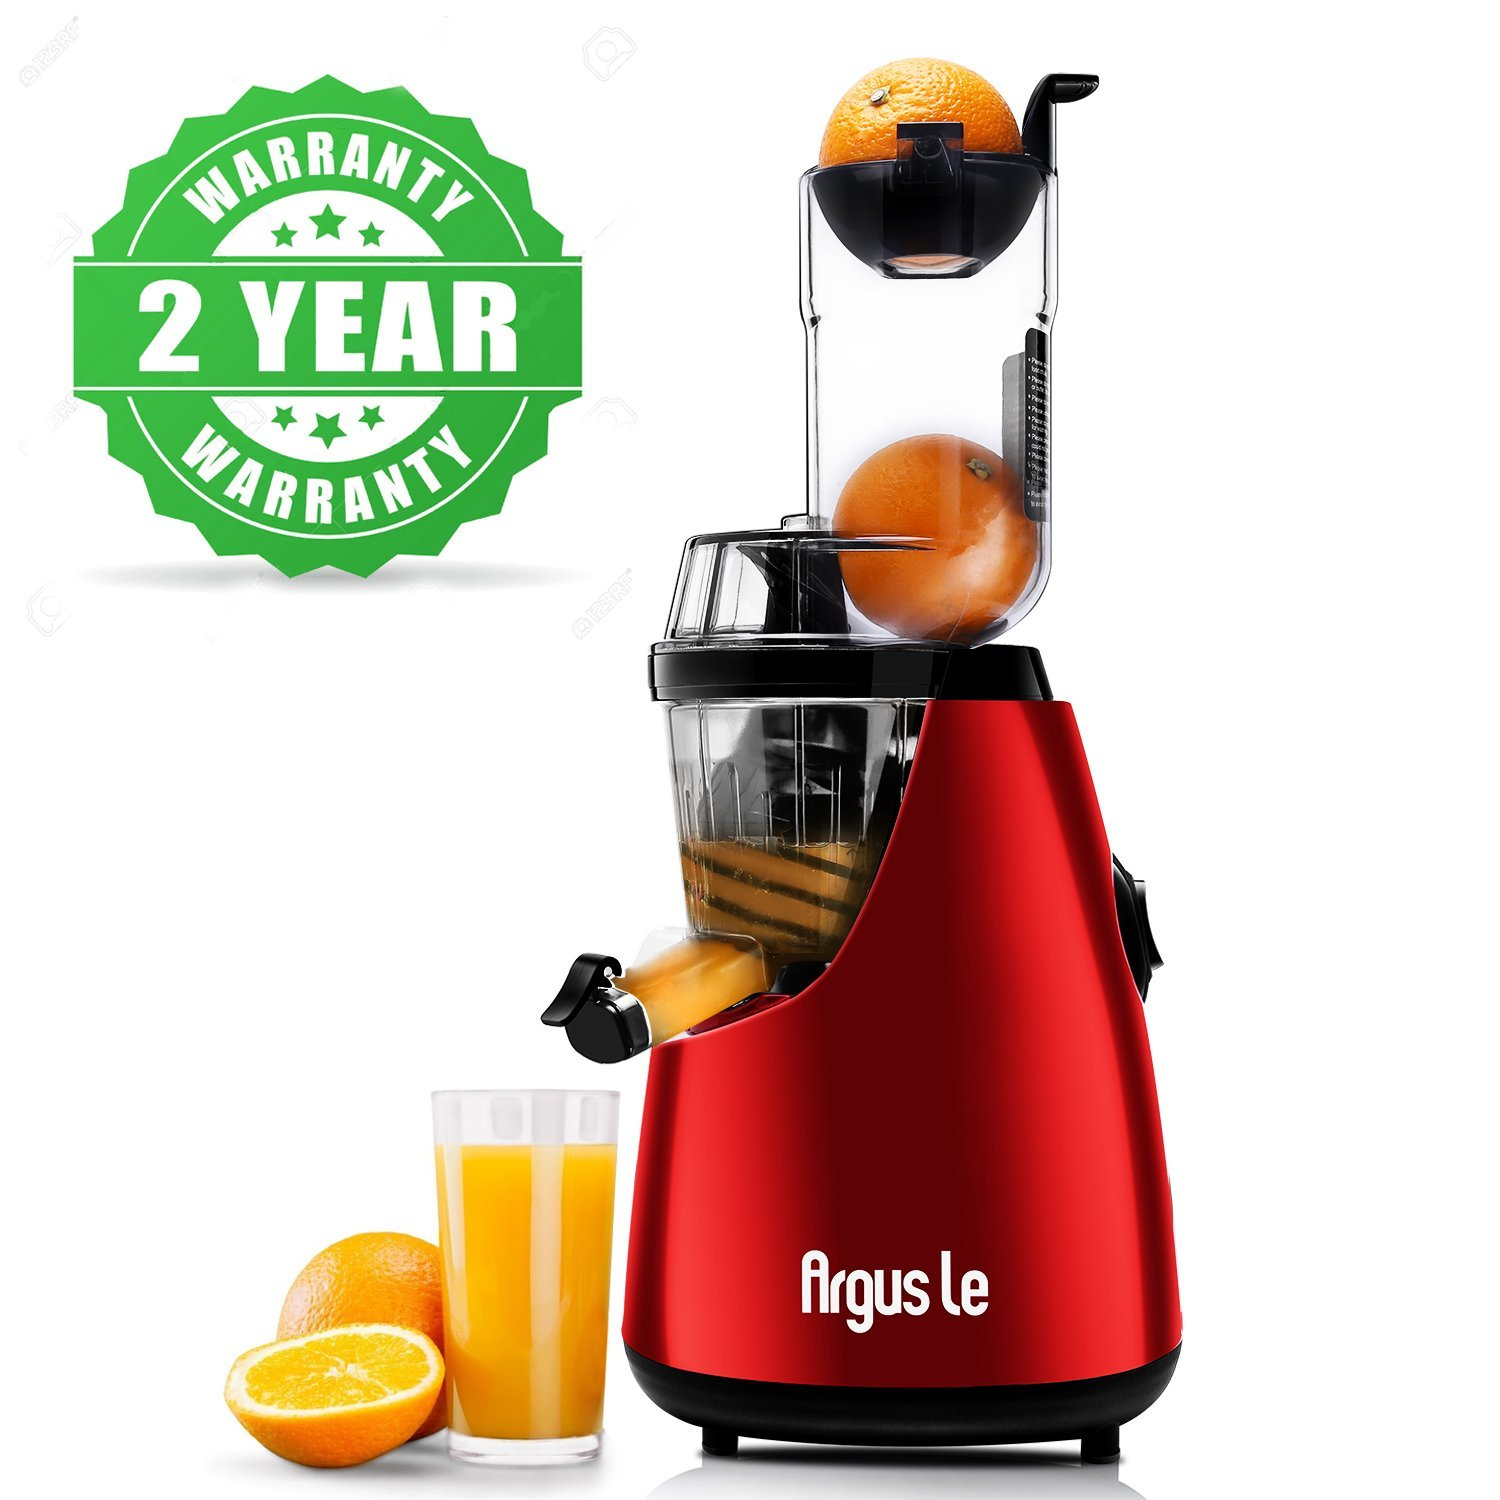 Argus Le Slow Masticating Juicer Review : Best Masticating Juicer 2018: 10 Best Juicers Reviews & Buying Guide